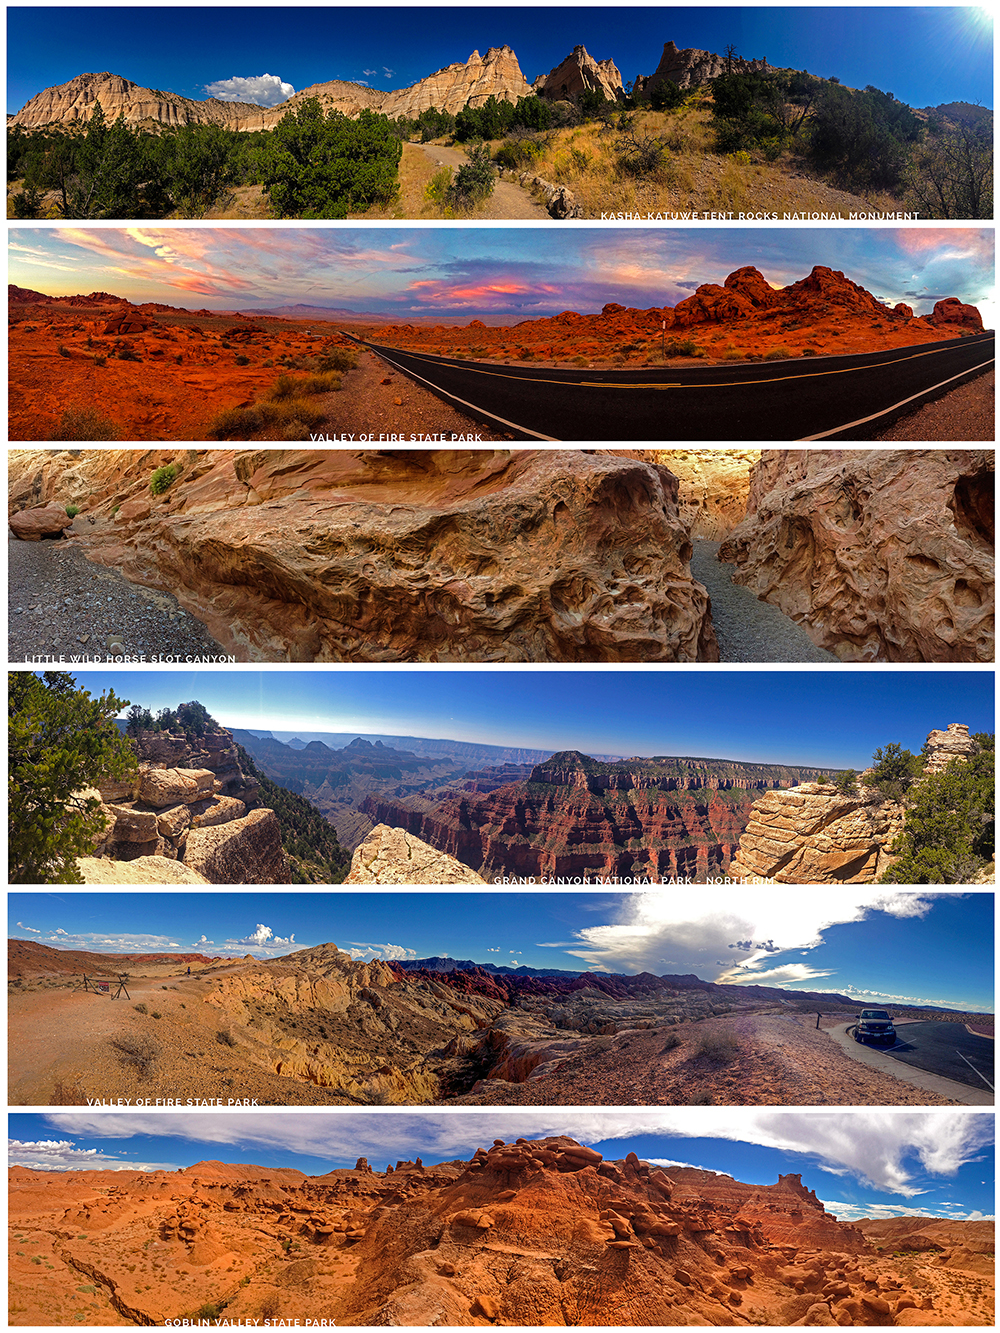 American Southwest 2014 Panorama Poster_06_2